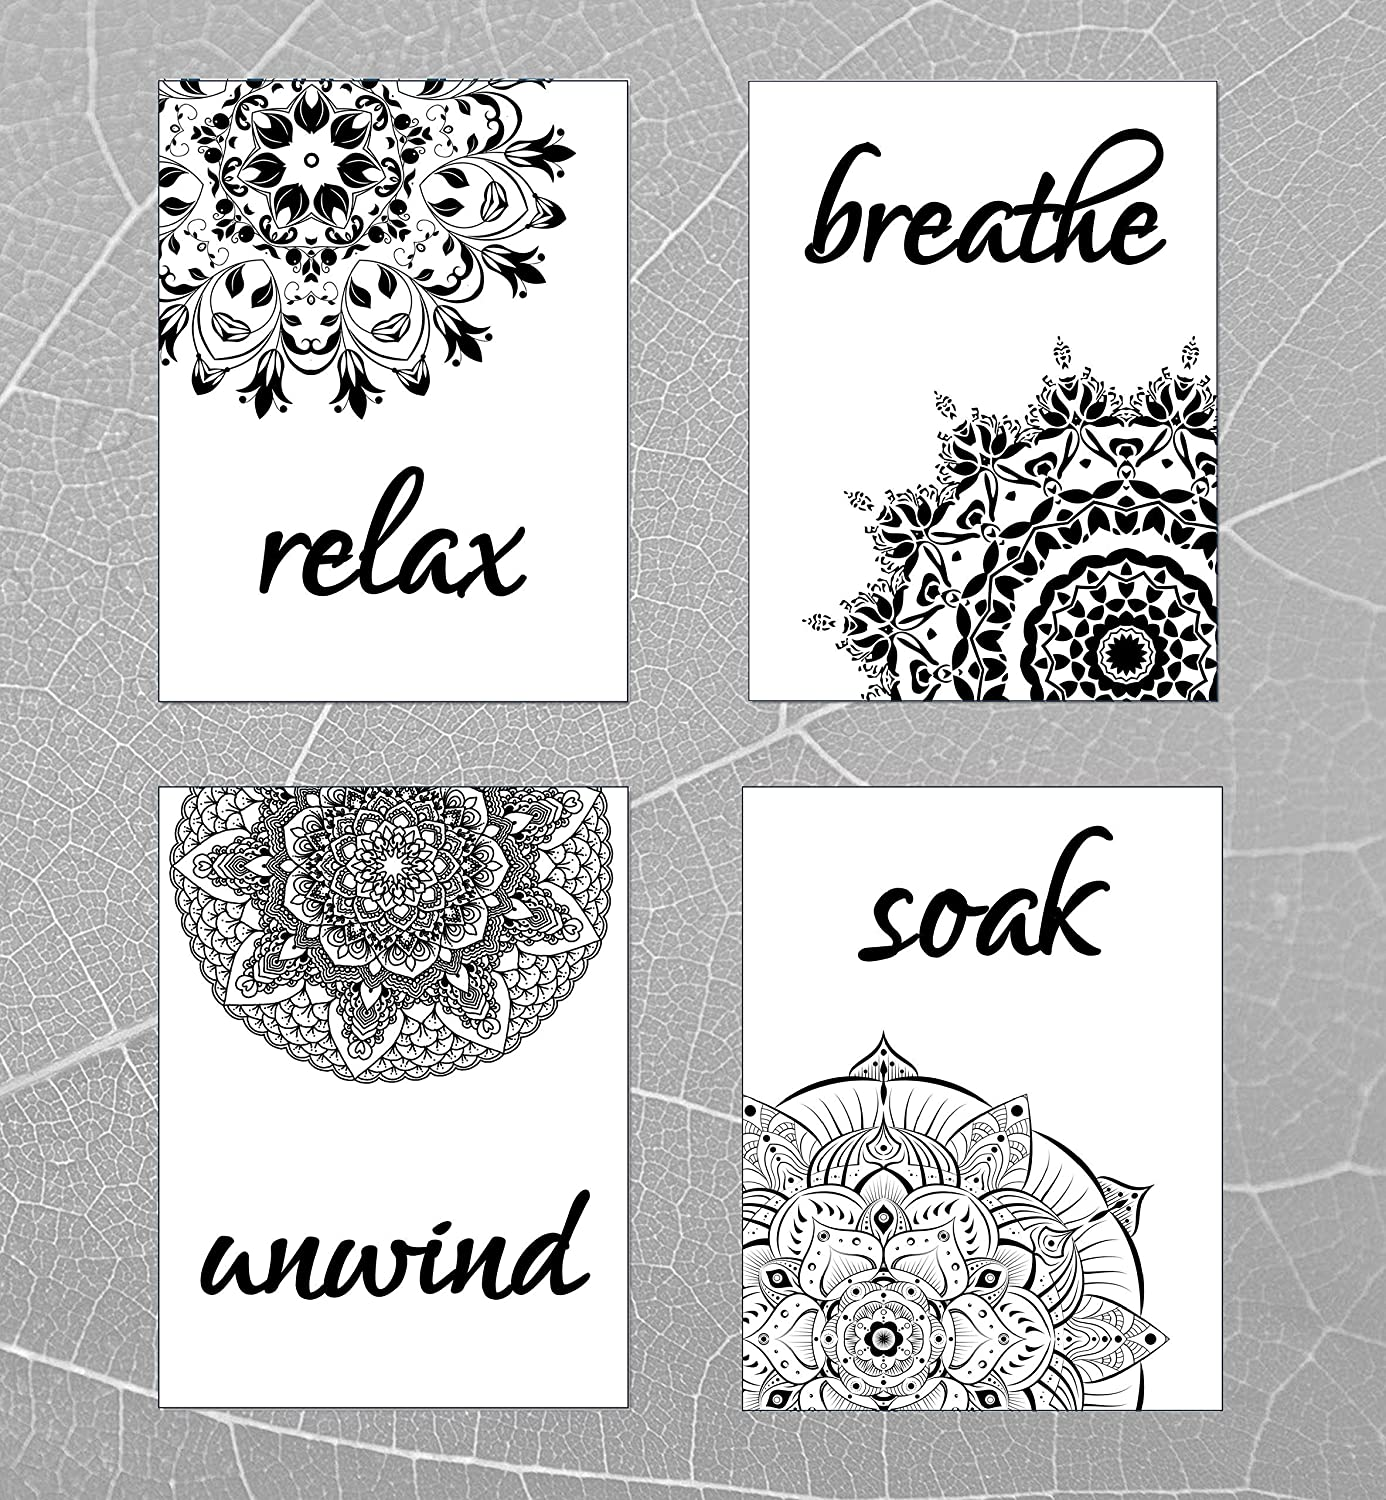 Mandala Flower Bathroom Wall Decor Quotes and Sayings - Set of 4 – Unframed - Great Gift for Bathroom Art Prints Signs